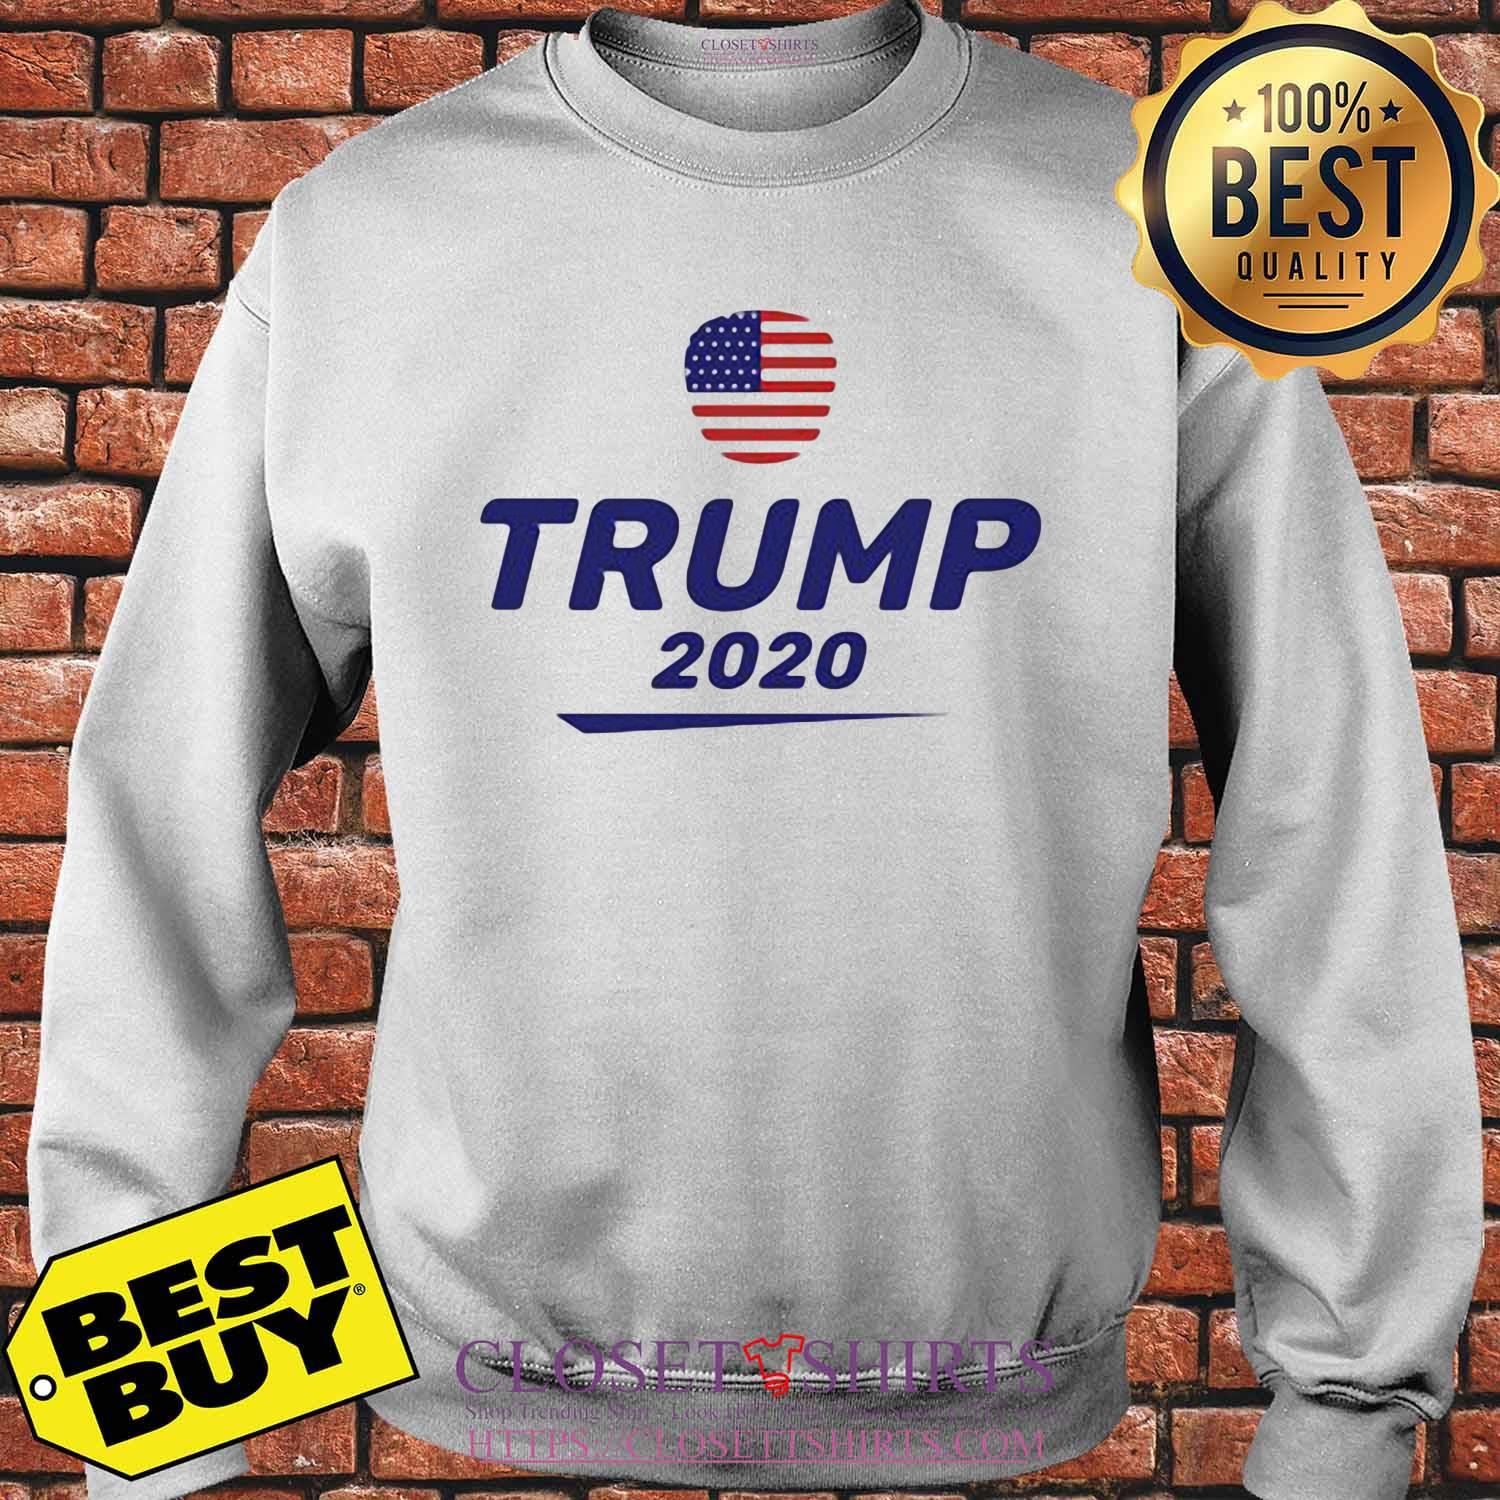 This unique Trump 2020 The us American flag shirt